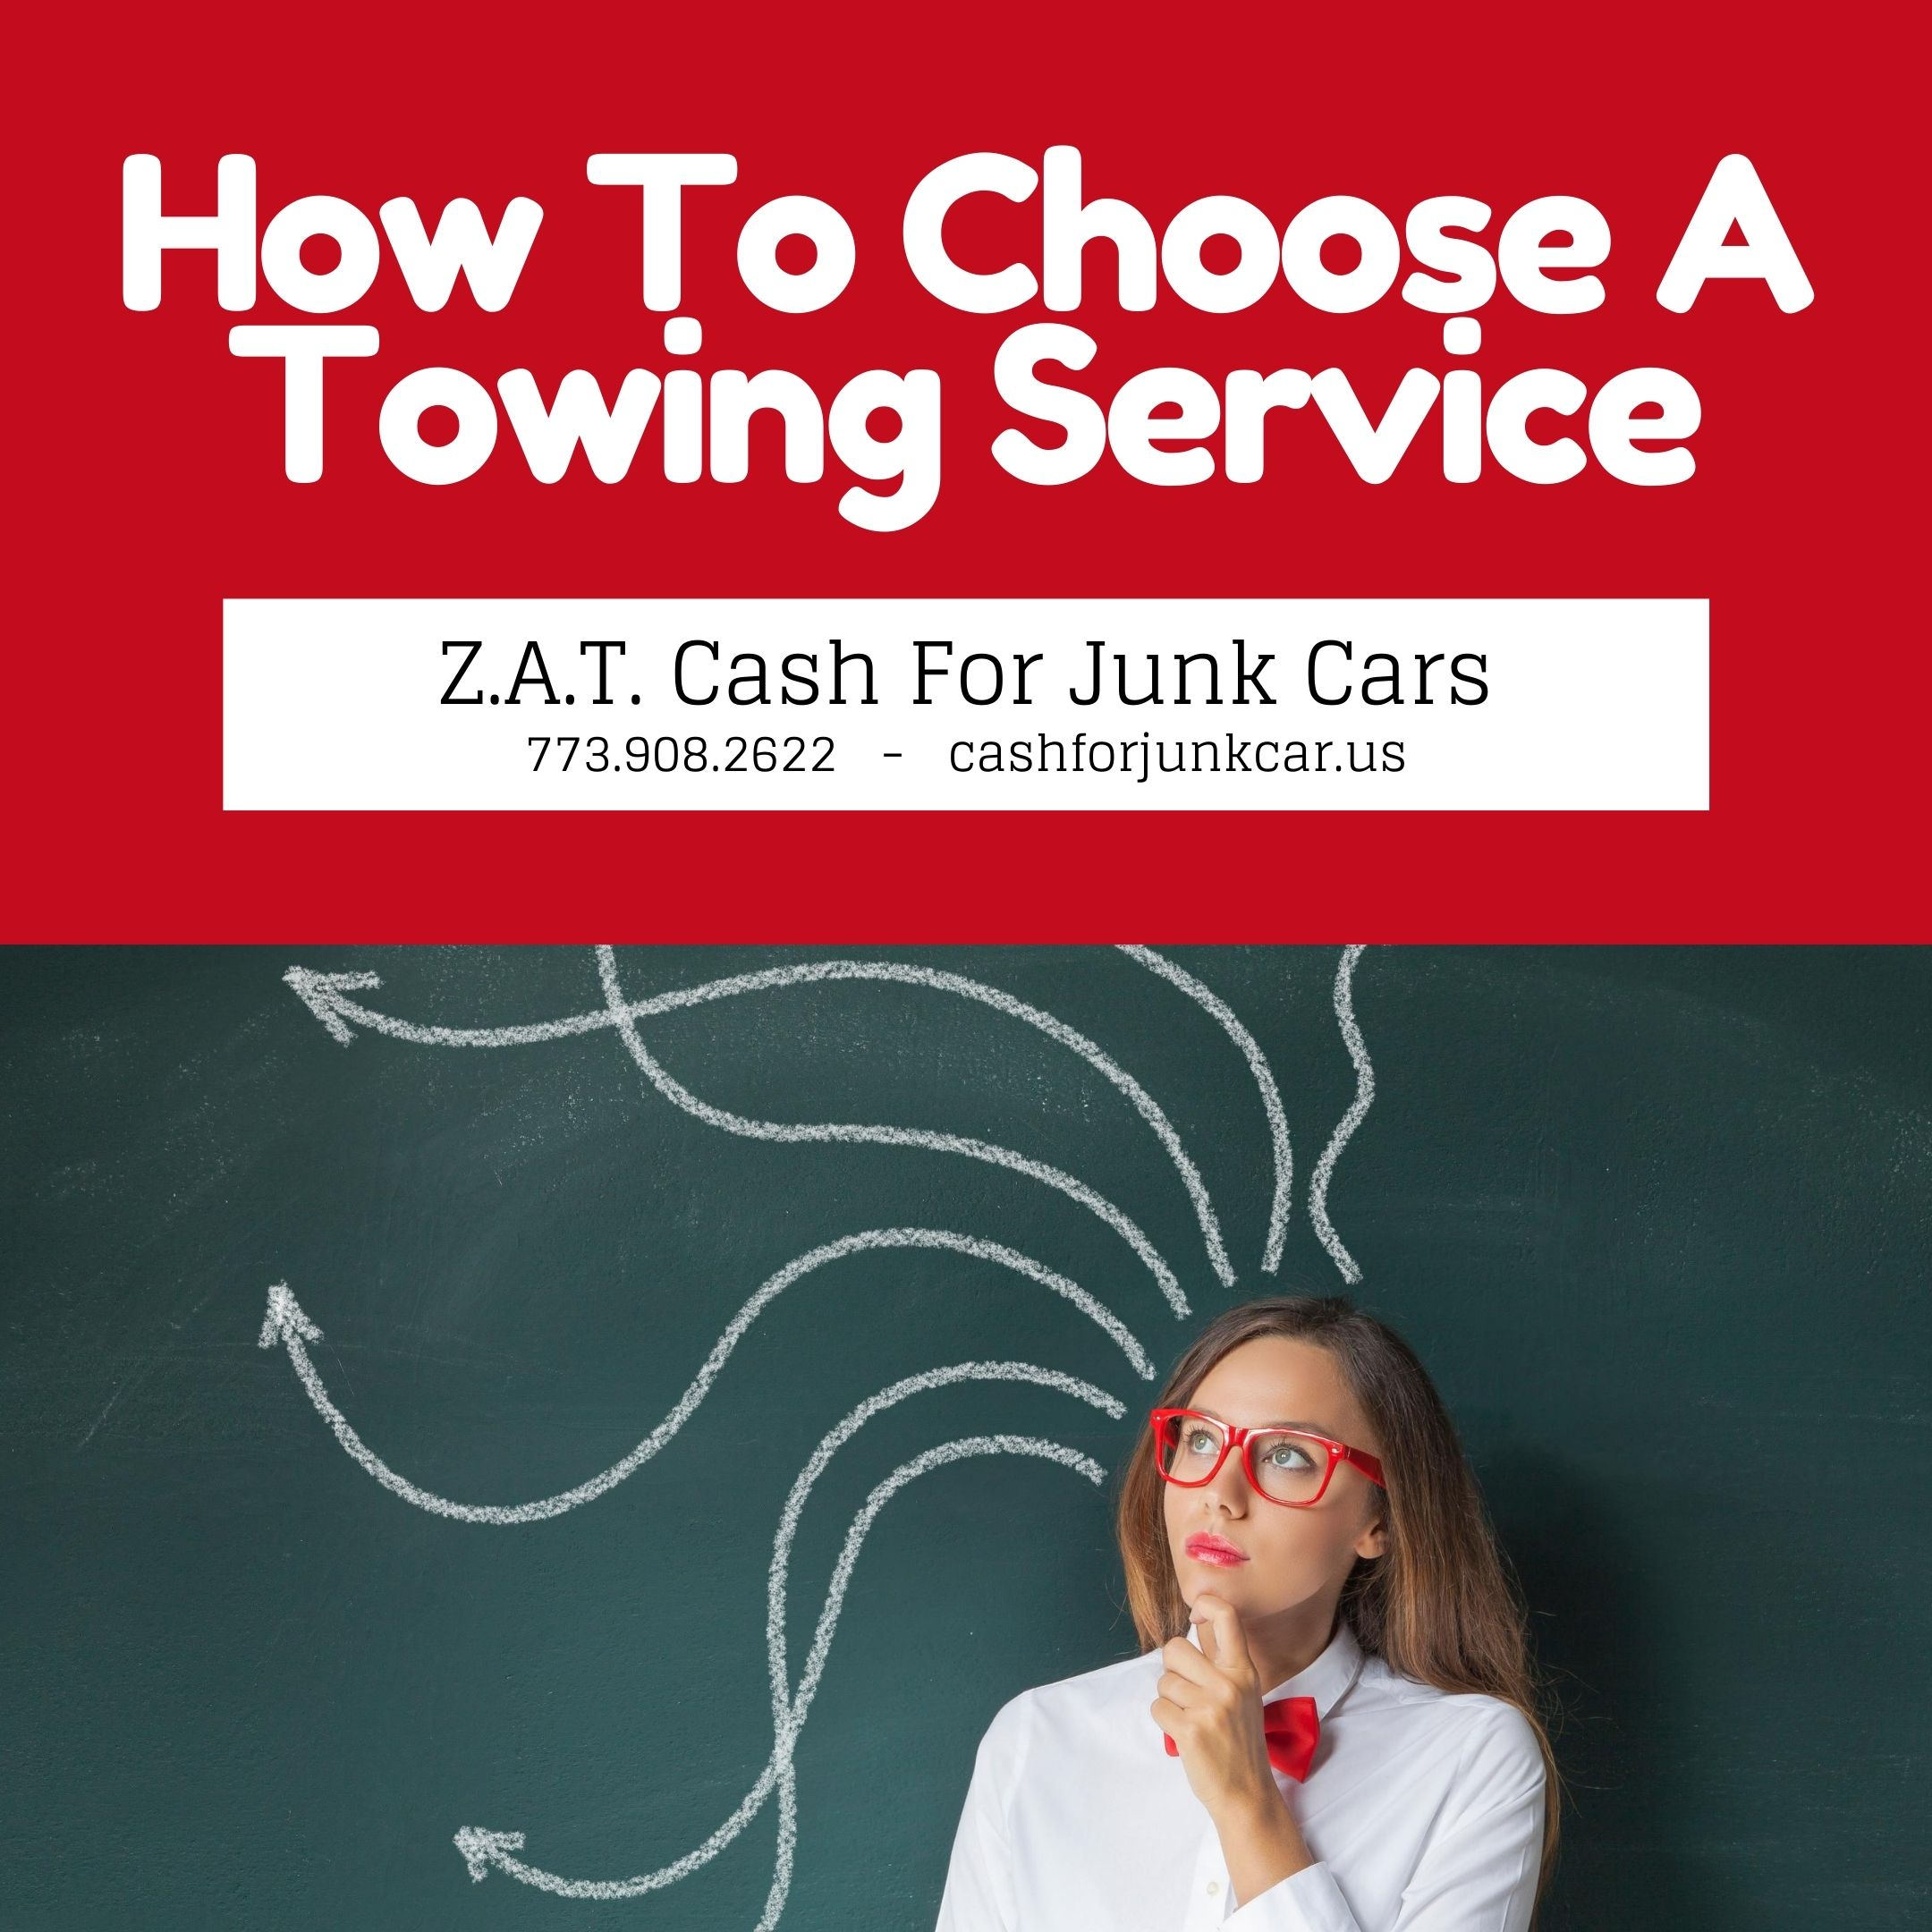 How To Choose A Towing Service - How To Choose A Towing Service